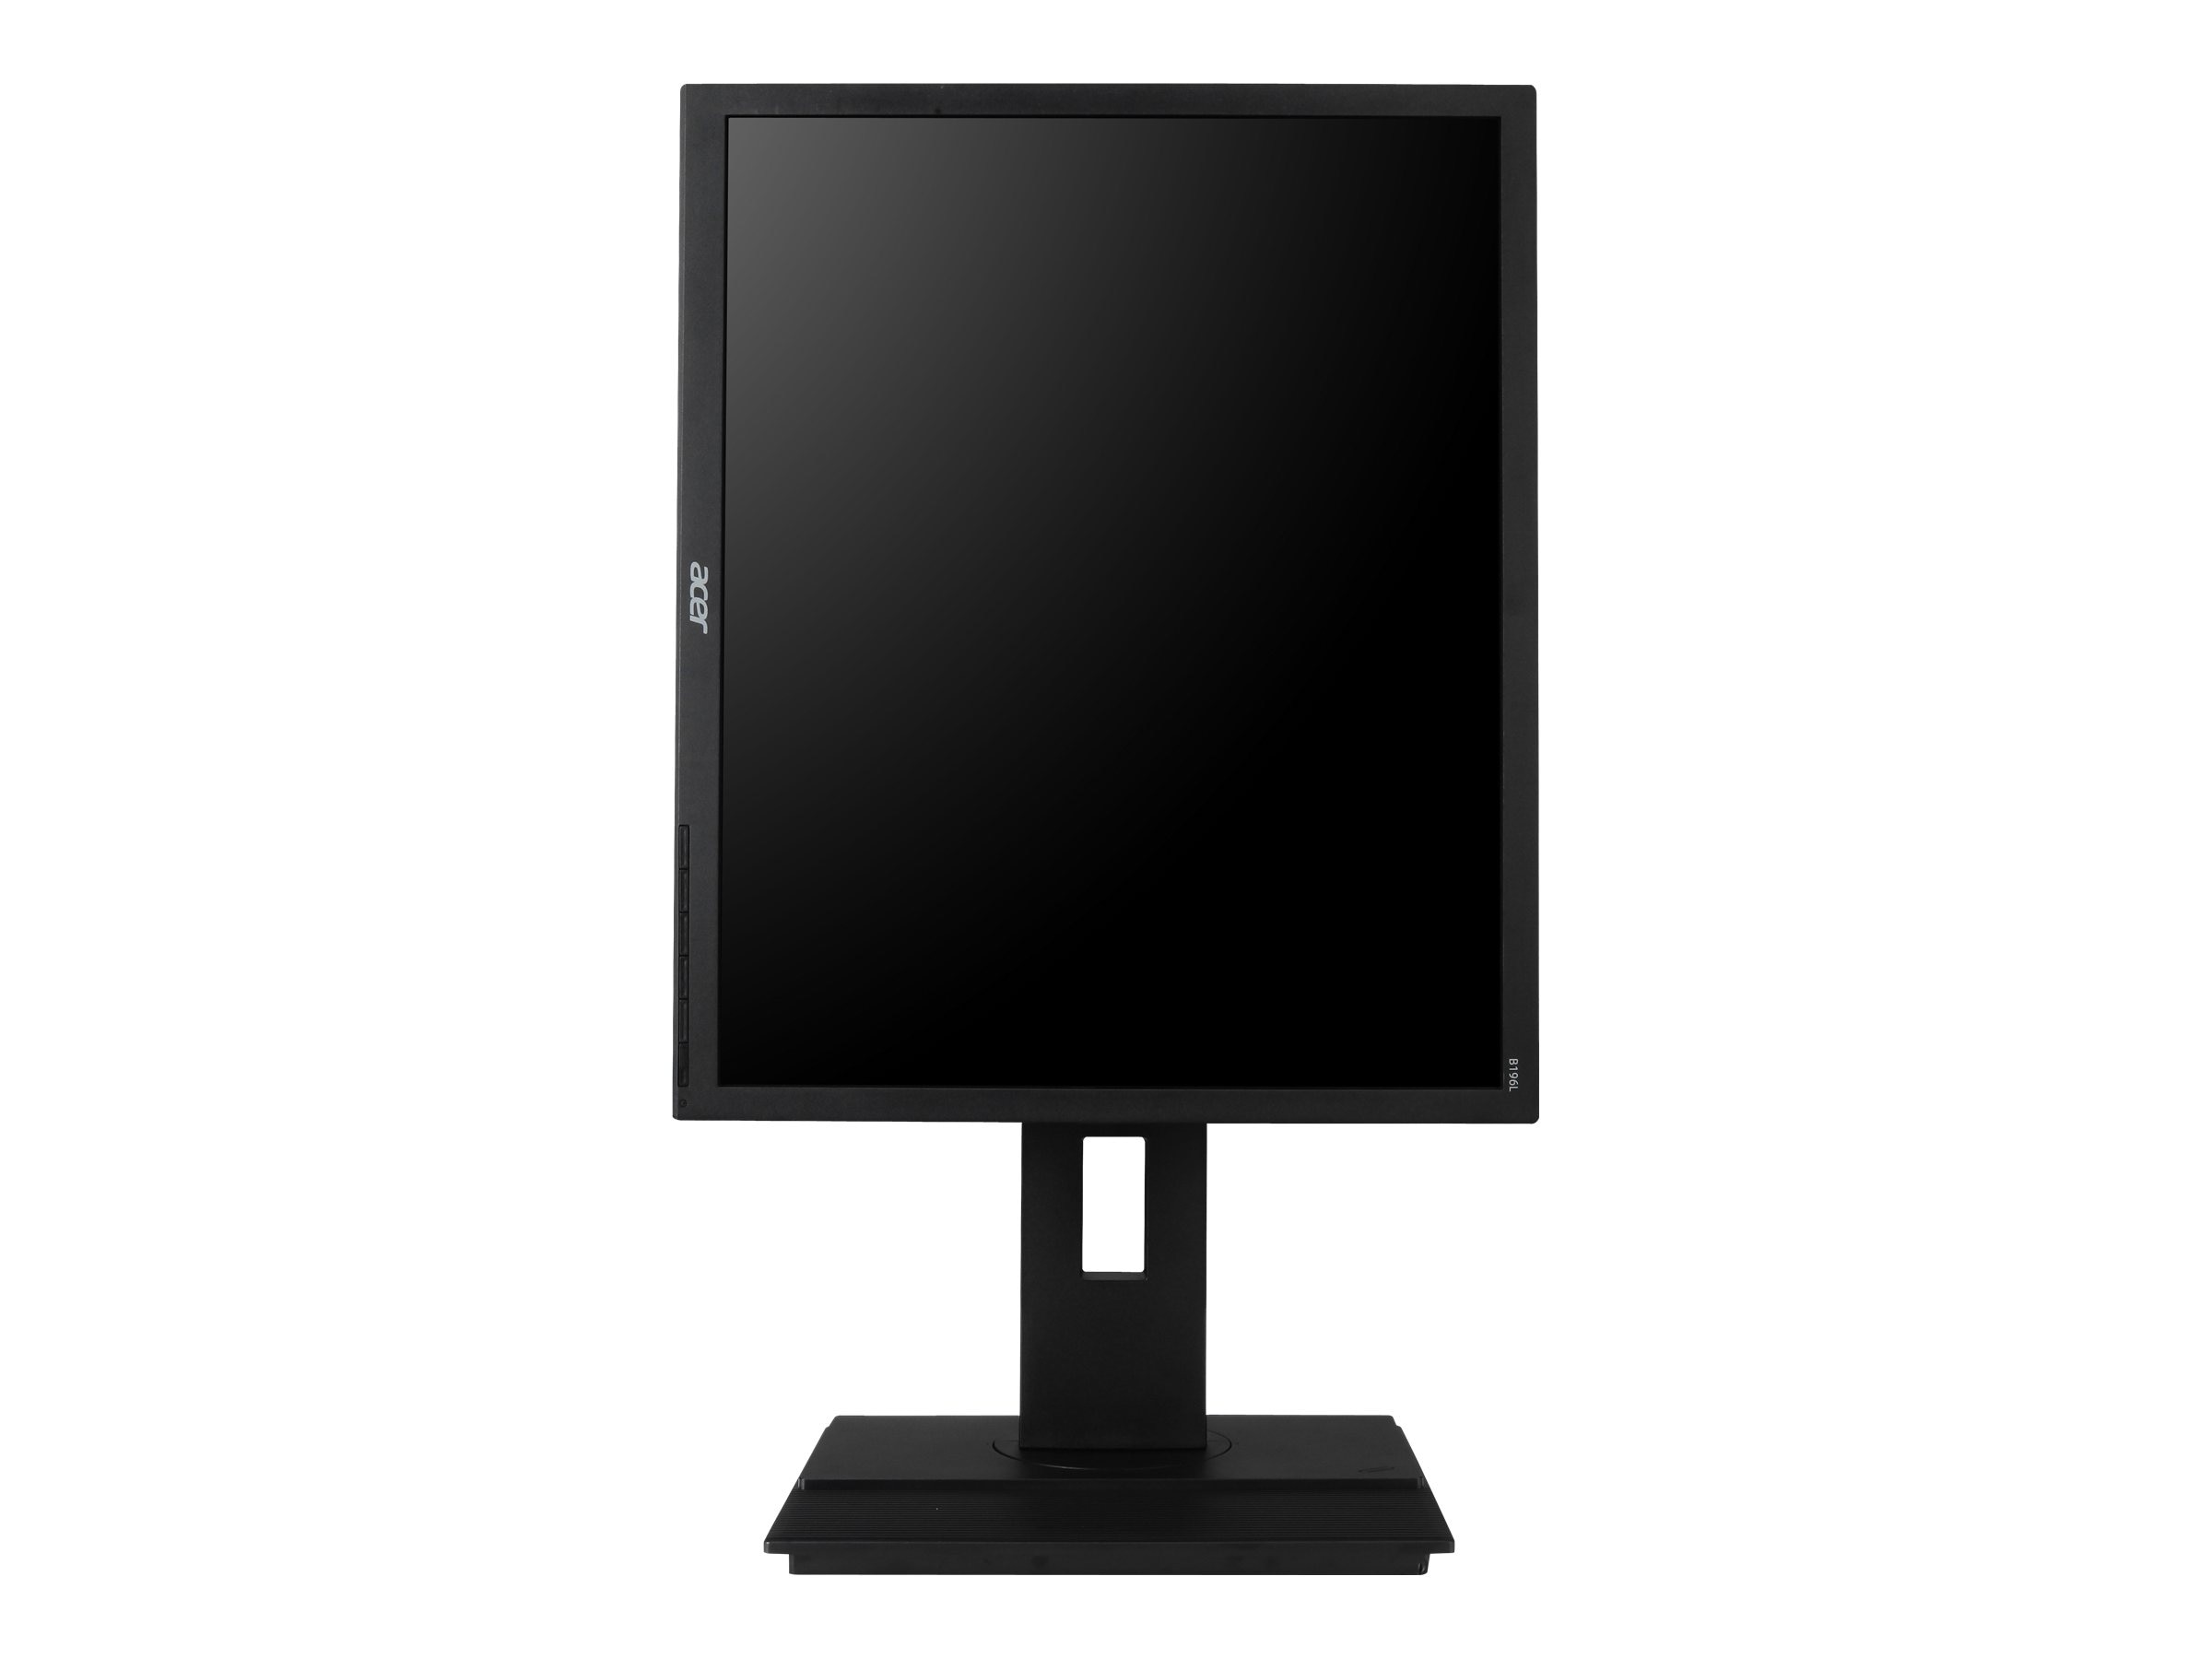 Acer 19 B196L ymdr LED-LCD Monitor, Black